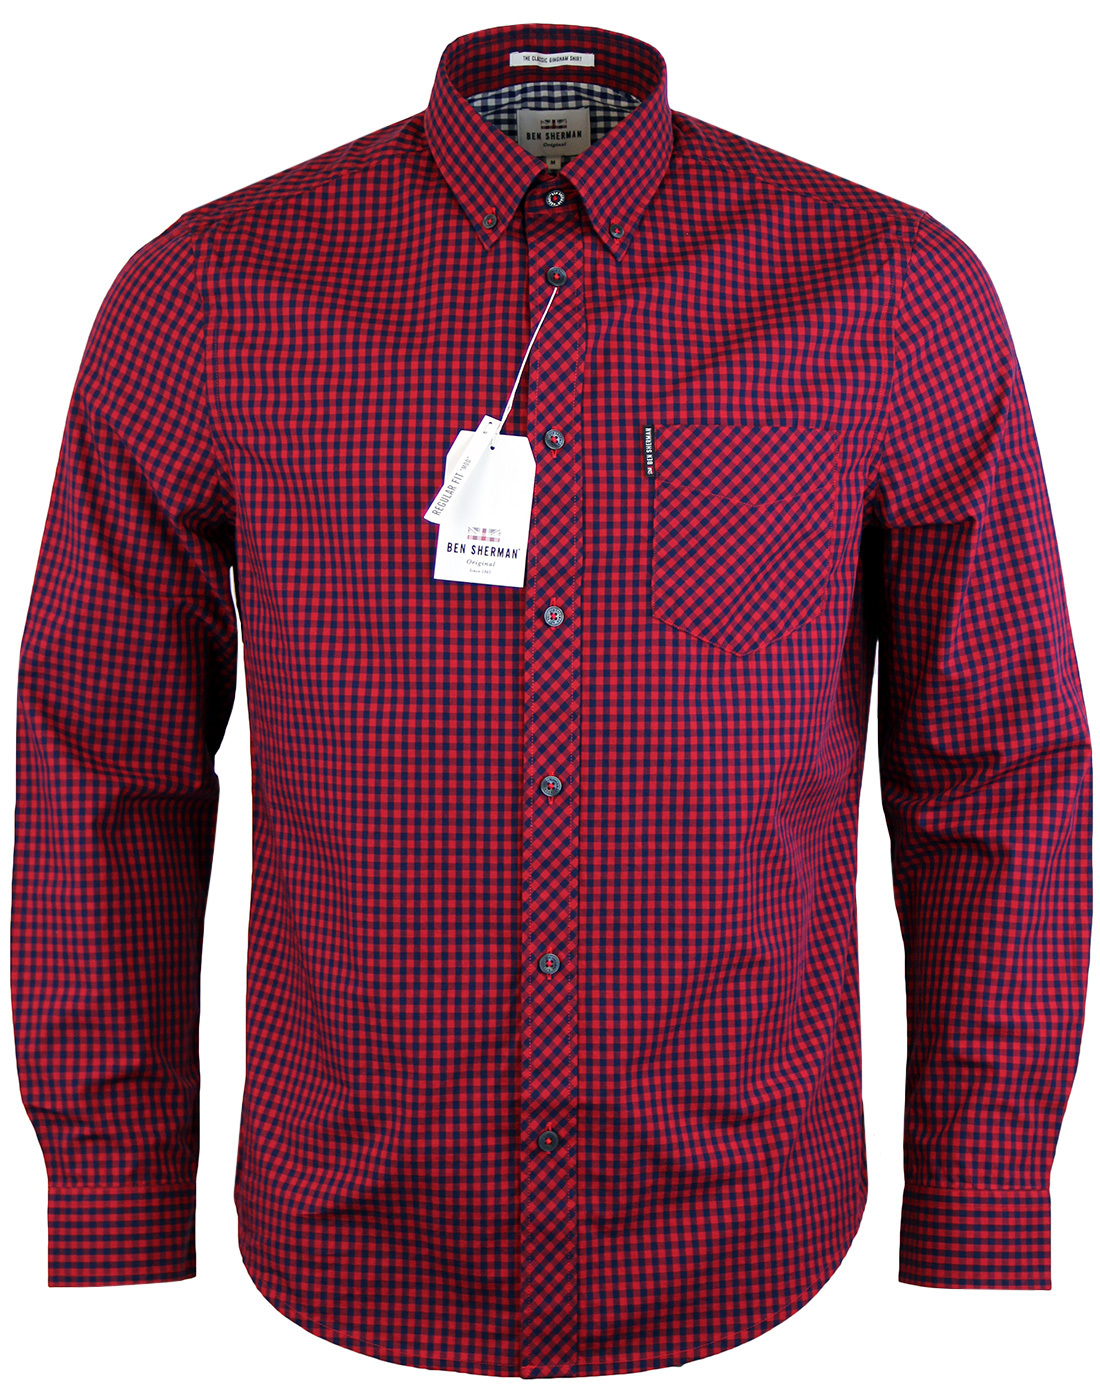 BEN SHERMAN Retro Mod 60s Gingham Shirt - Red